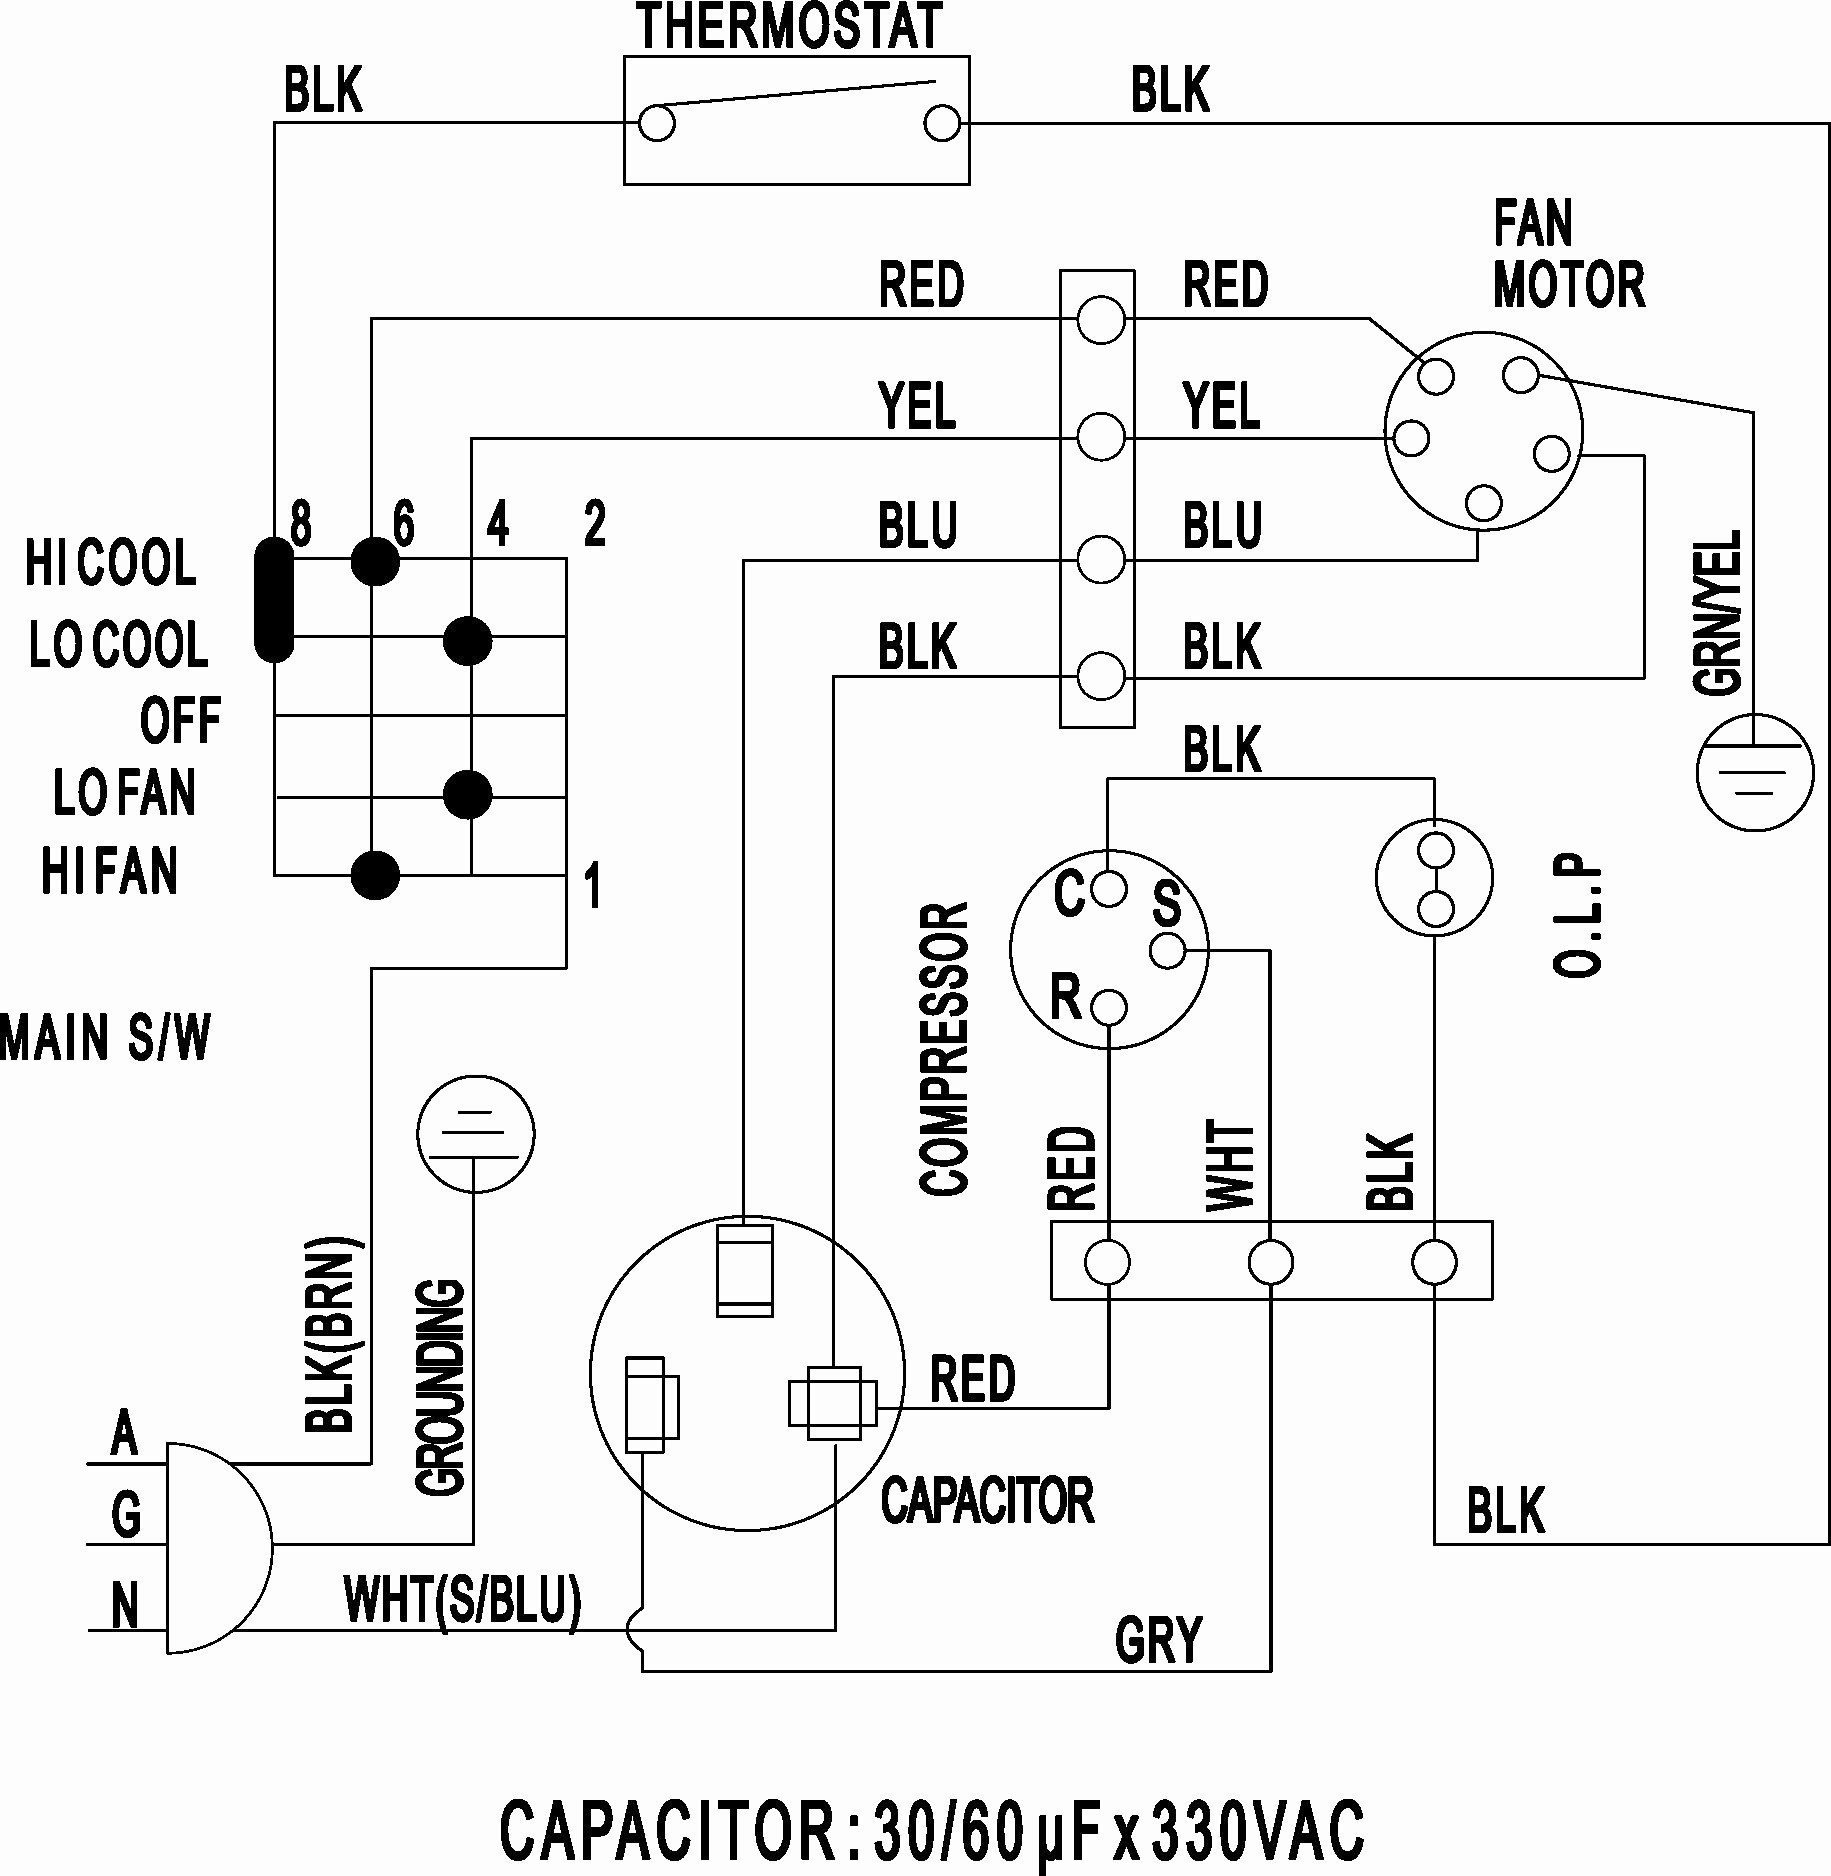 samsung split type aircon wiring diagram split air conditioner wiring diagram sample